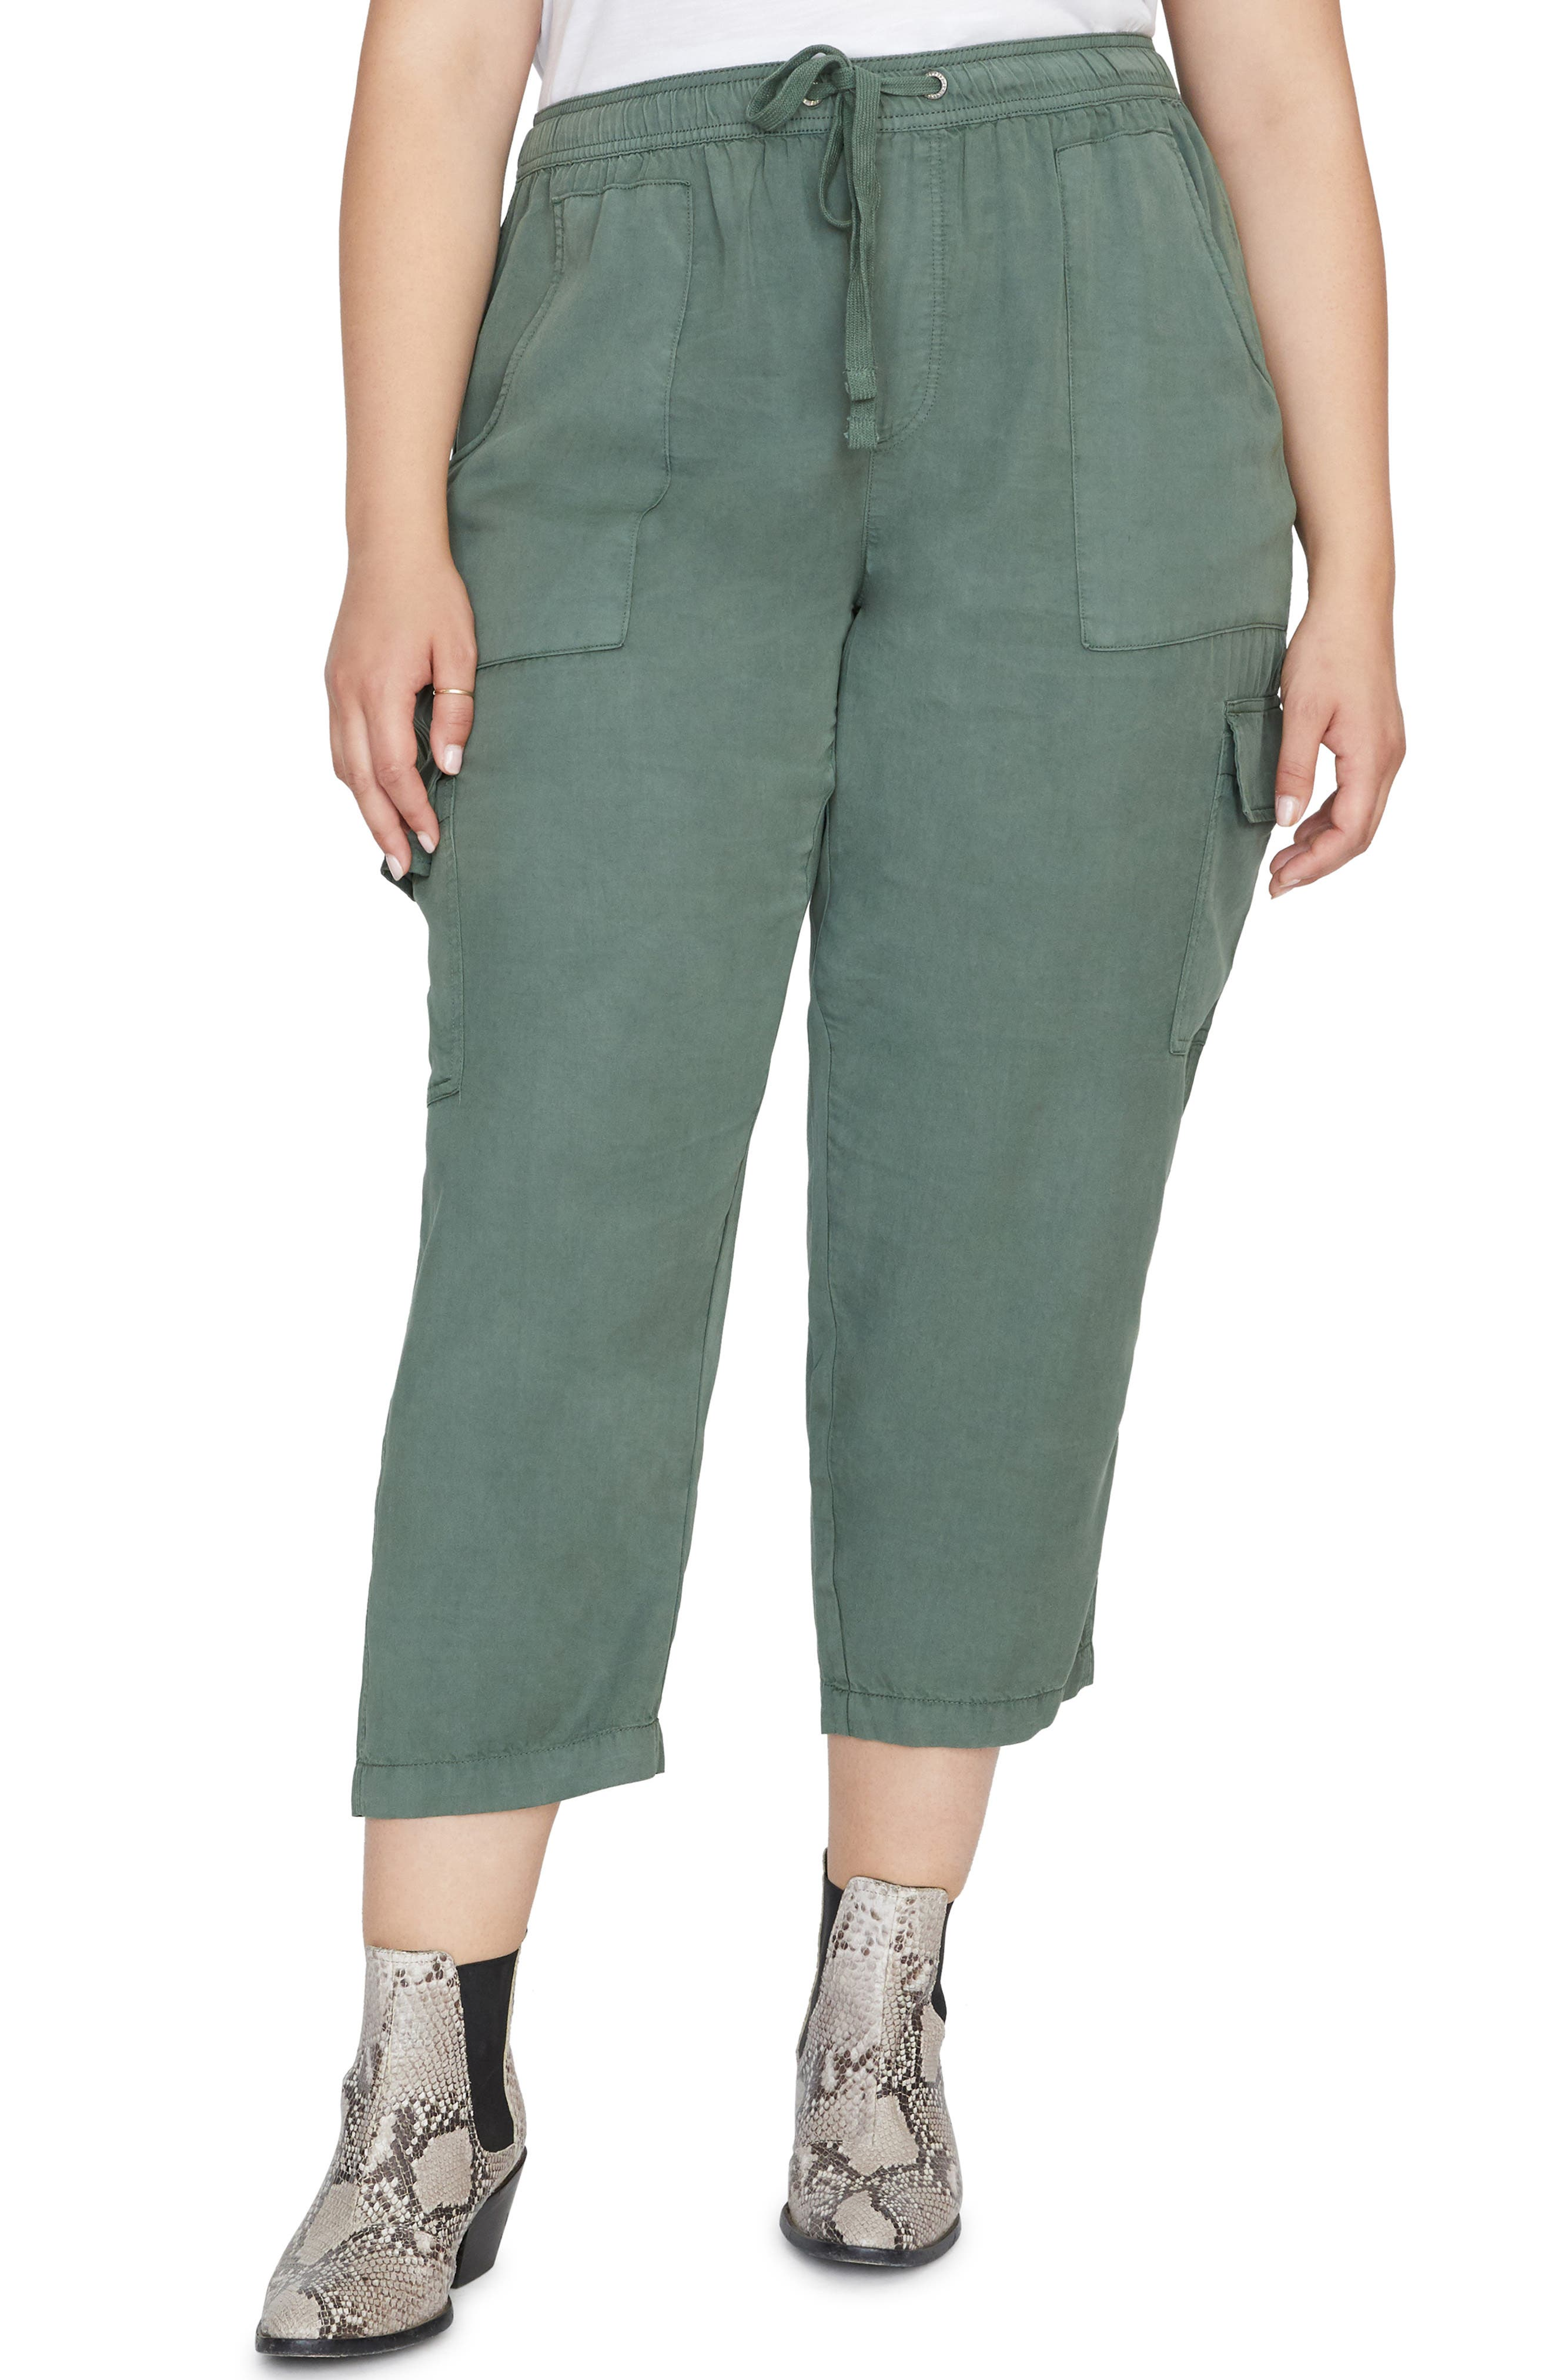 Plus Size Sanctuary Discoverer Pull-On Cargo Pants, Green